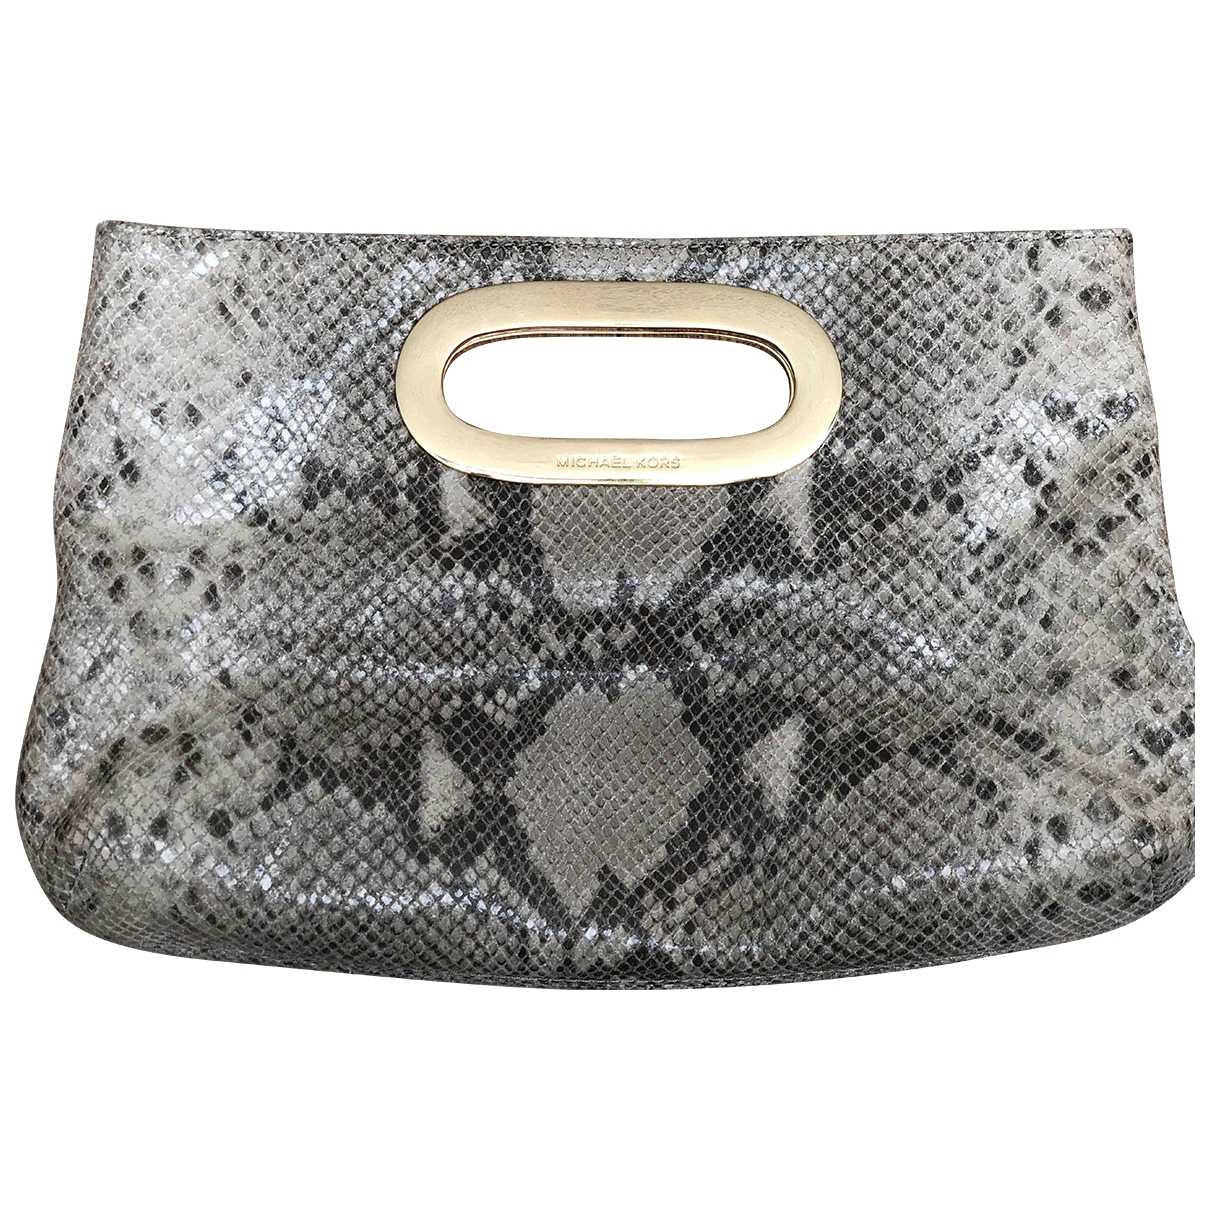 Michael Kors \N Clutch in Polyester